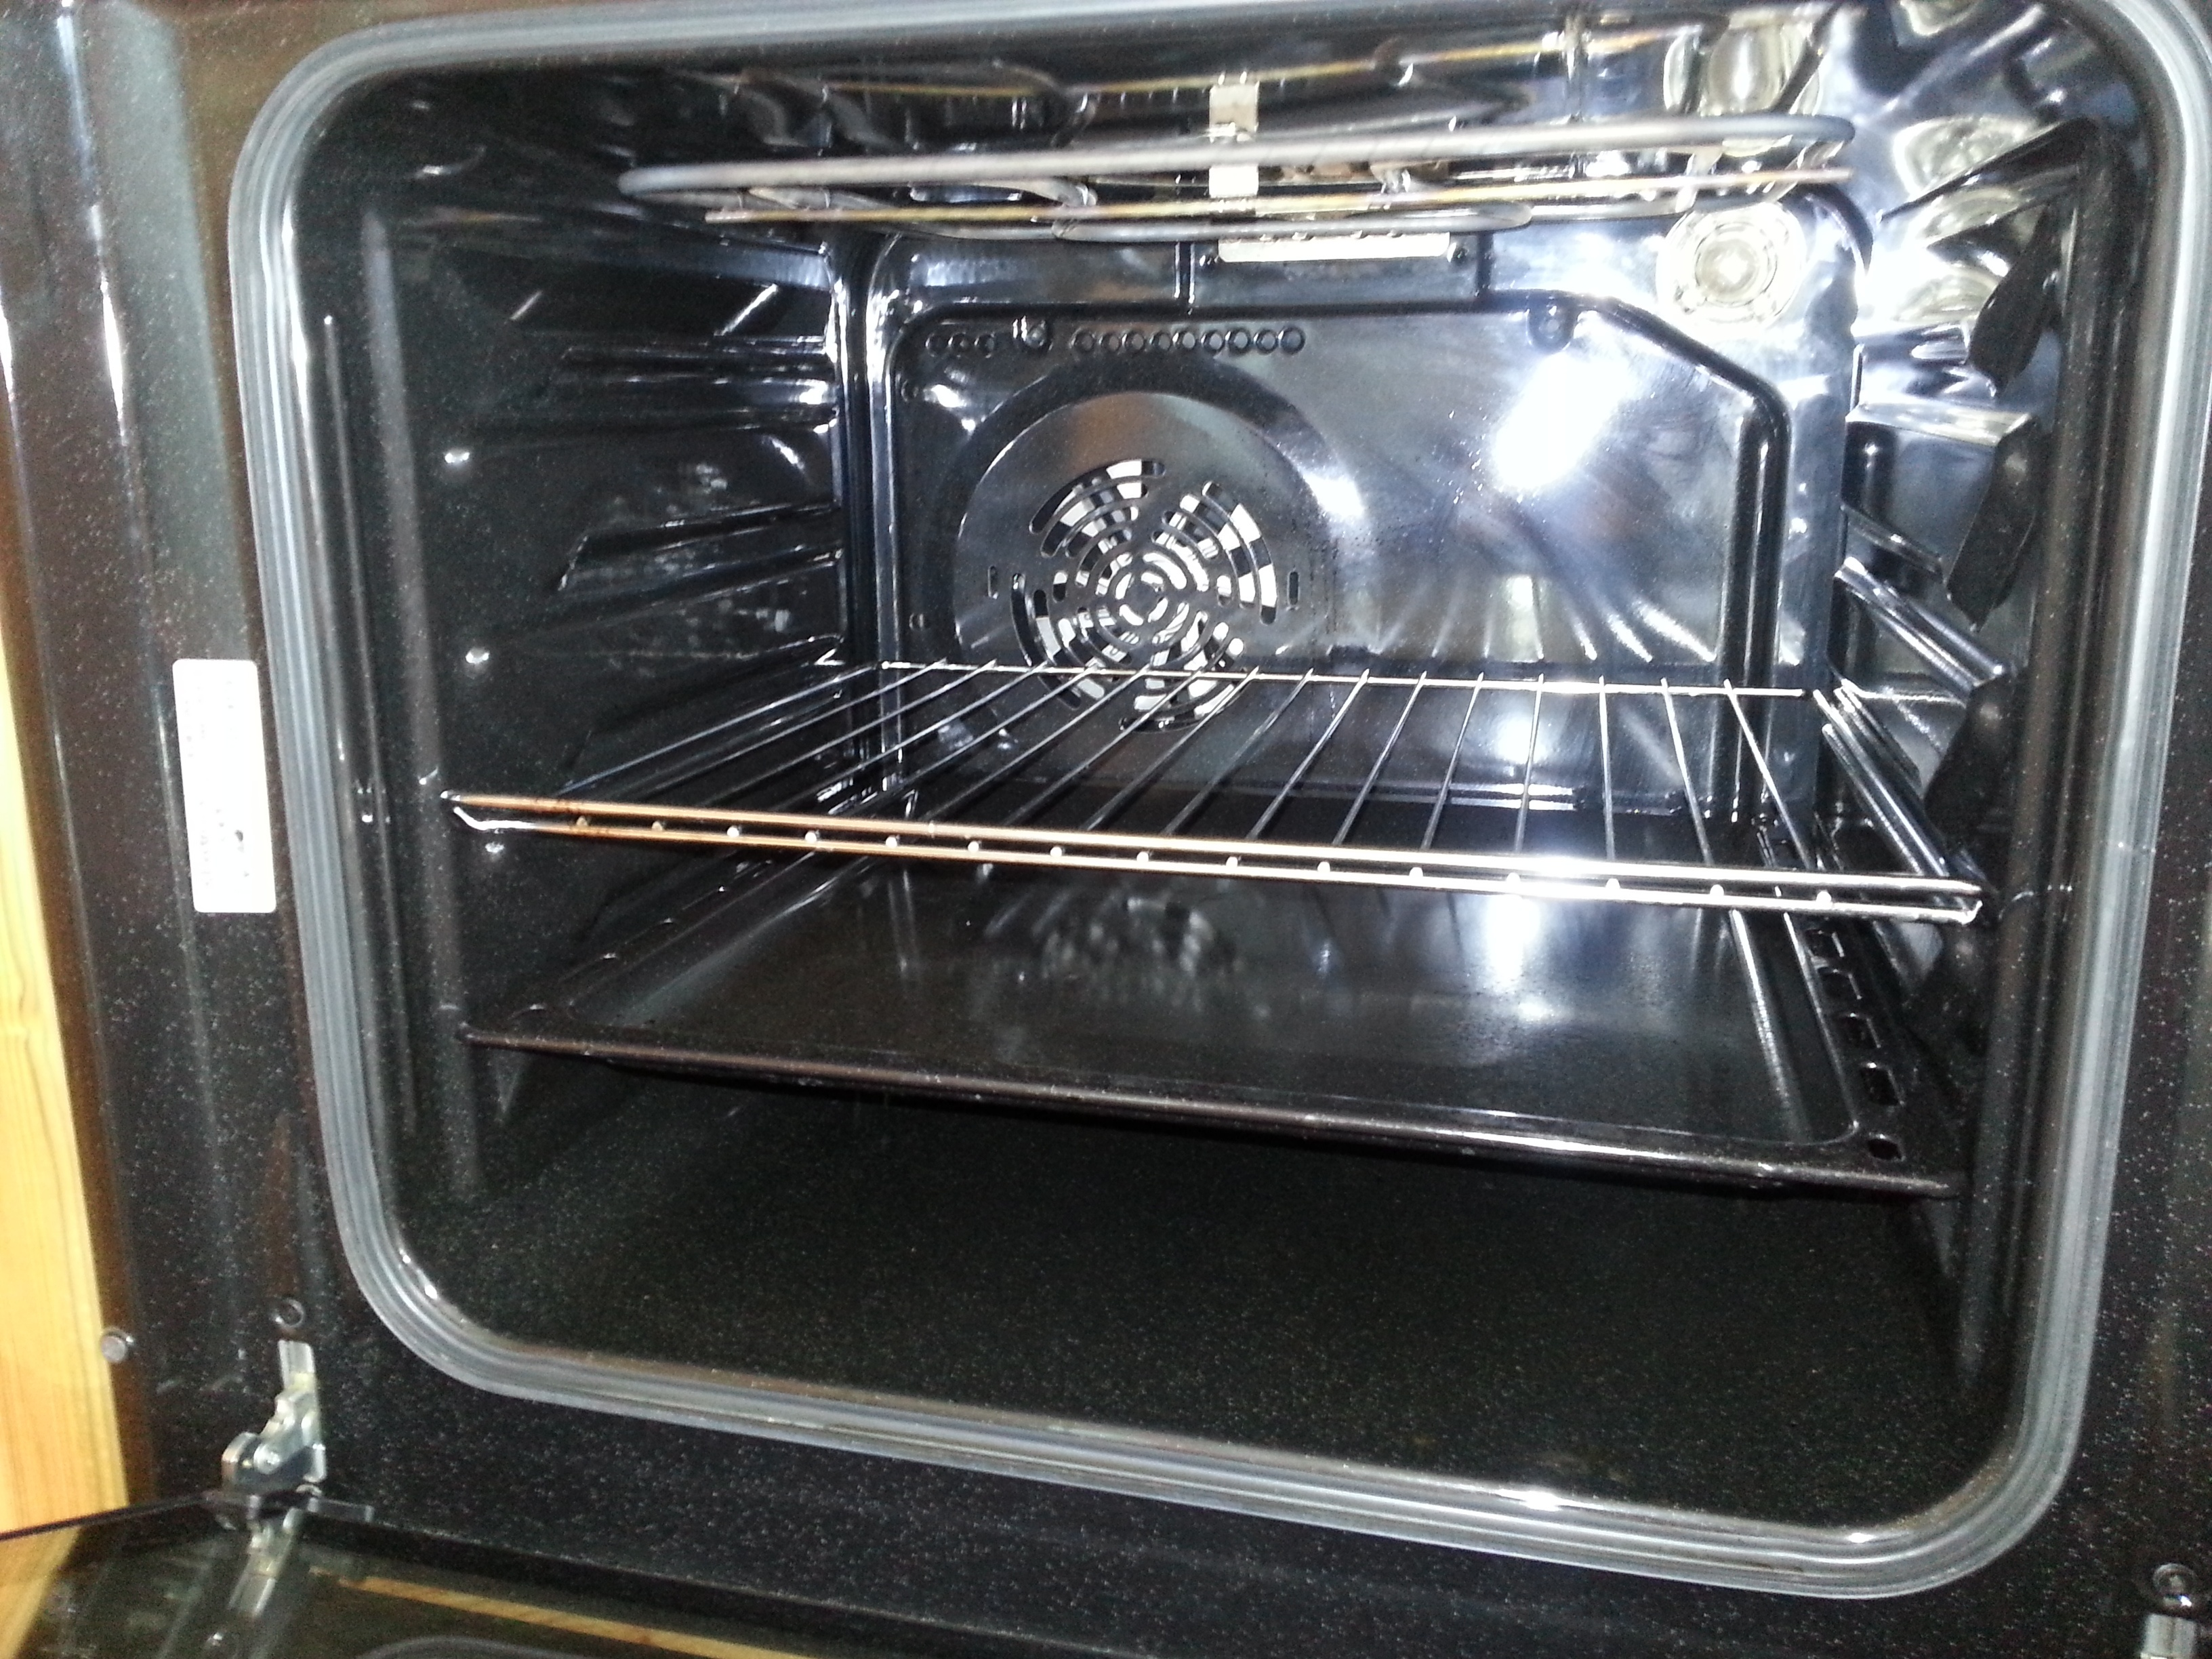 Image result for Oven Cleaning Service